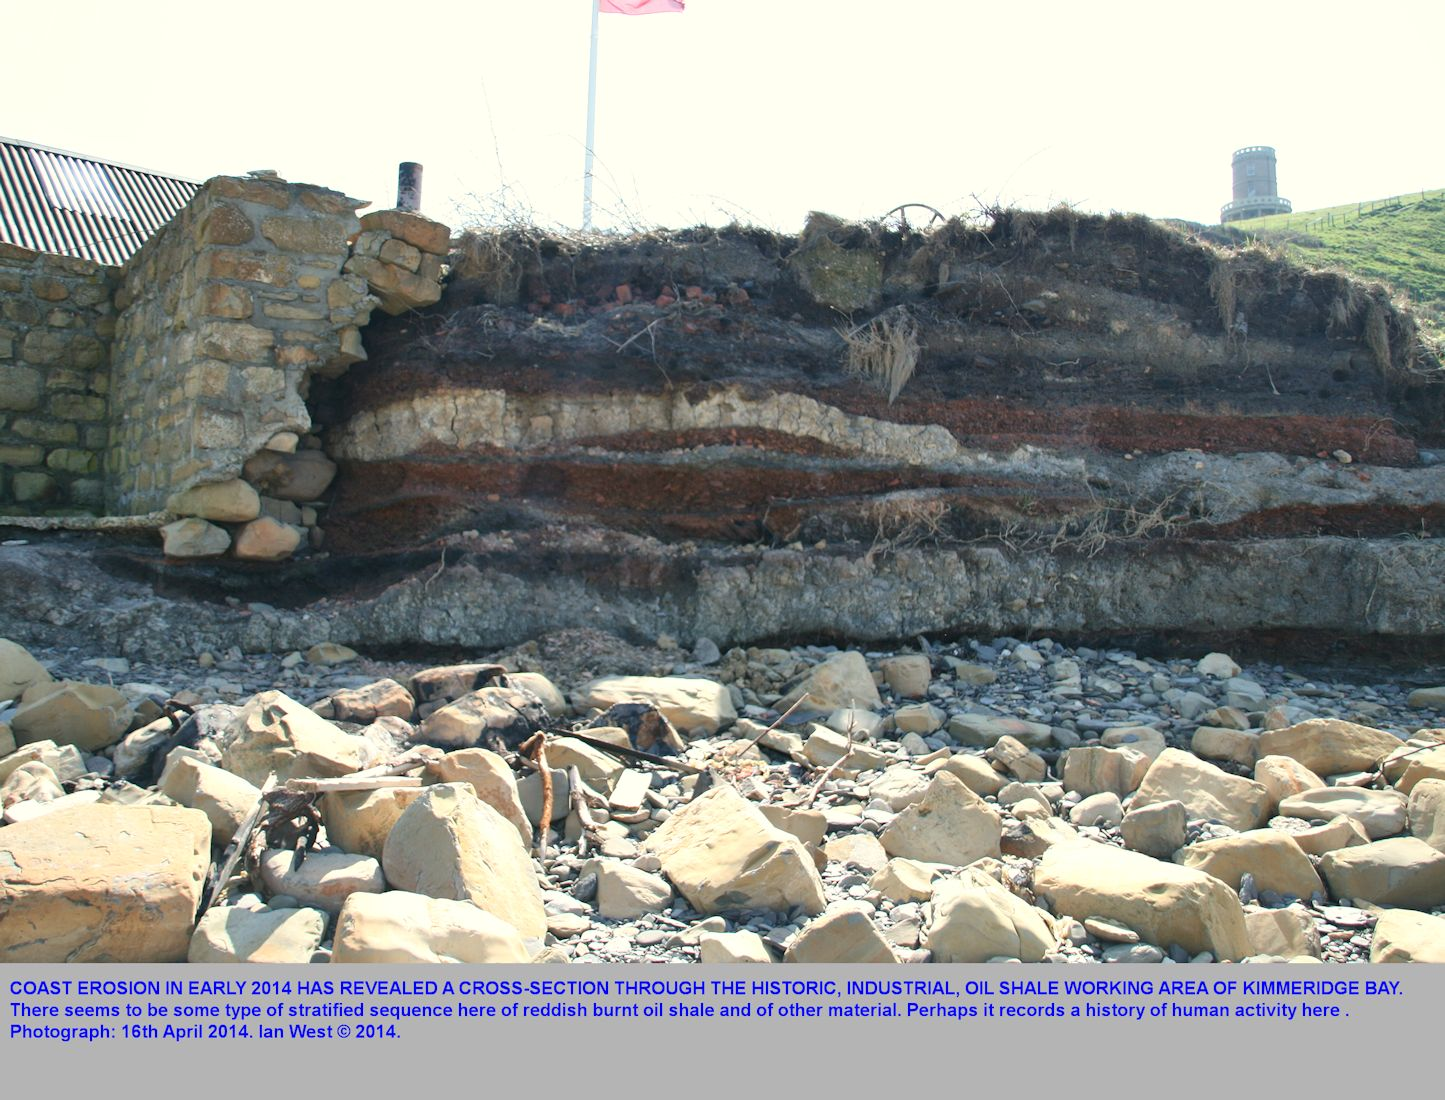 Erosion at the former industrial port of eastern Kimmeridge Bay, Dorset, has shown a stratified sequence, including burnt shale, 16th April 2014